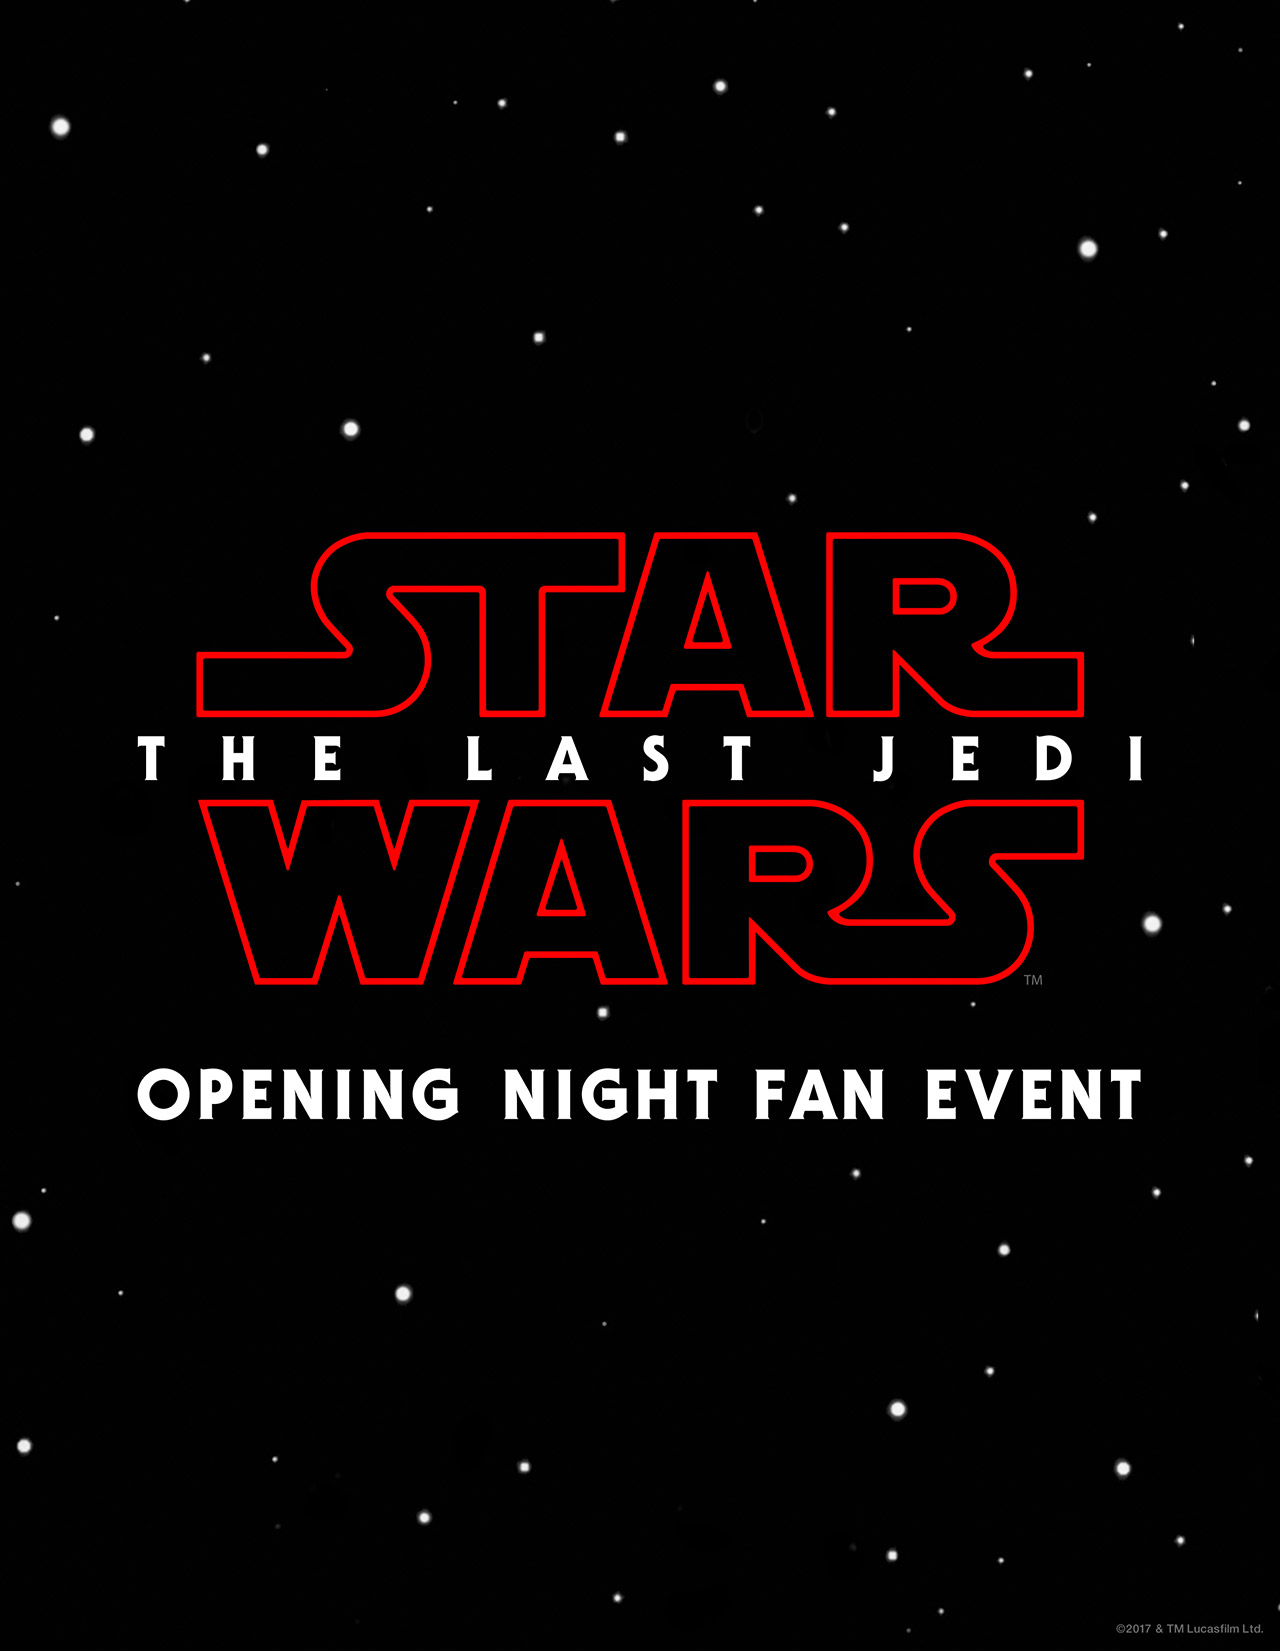 Opening Night Fan Event